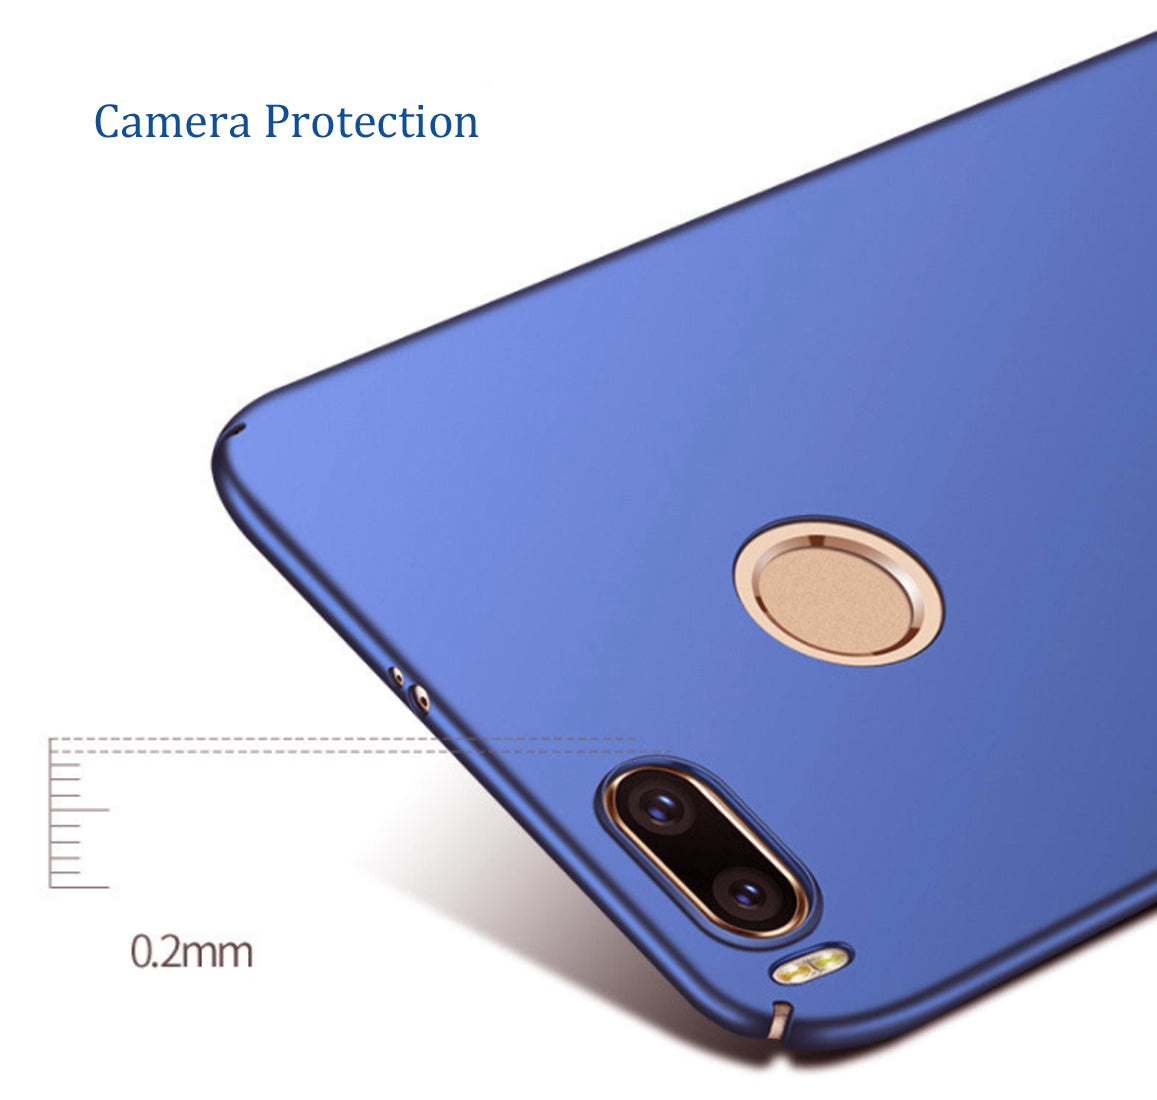 Silk Smooth Finish [Full Coverage] All Sides Protection Slim Back Case Cover For Xiaomi Mi A1 - Blue - Mobizang